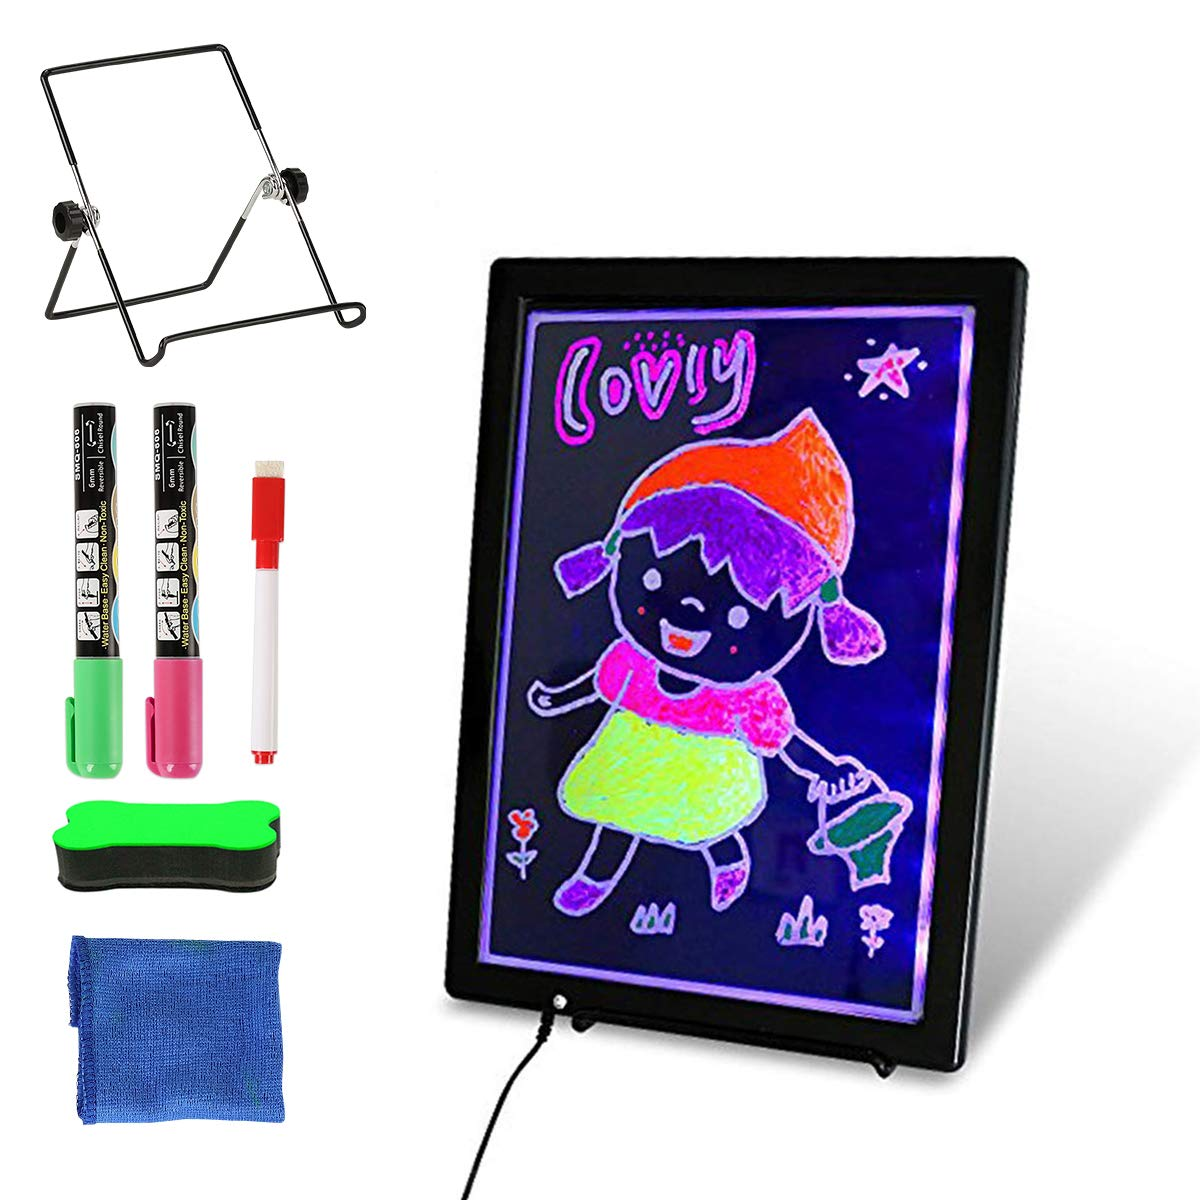 Slsy LED Writing Board USB, 12.8'' x 9.4'' Erasable Neon Illuminated Kids Drawing Board, Double Sided Message Board with 2 Fluorescent Markers for Kid Gifts, Home Note